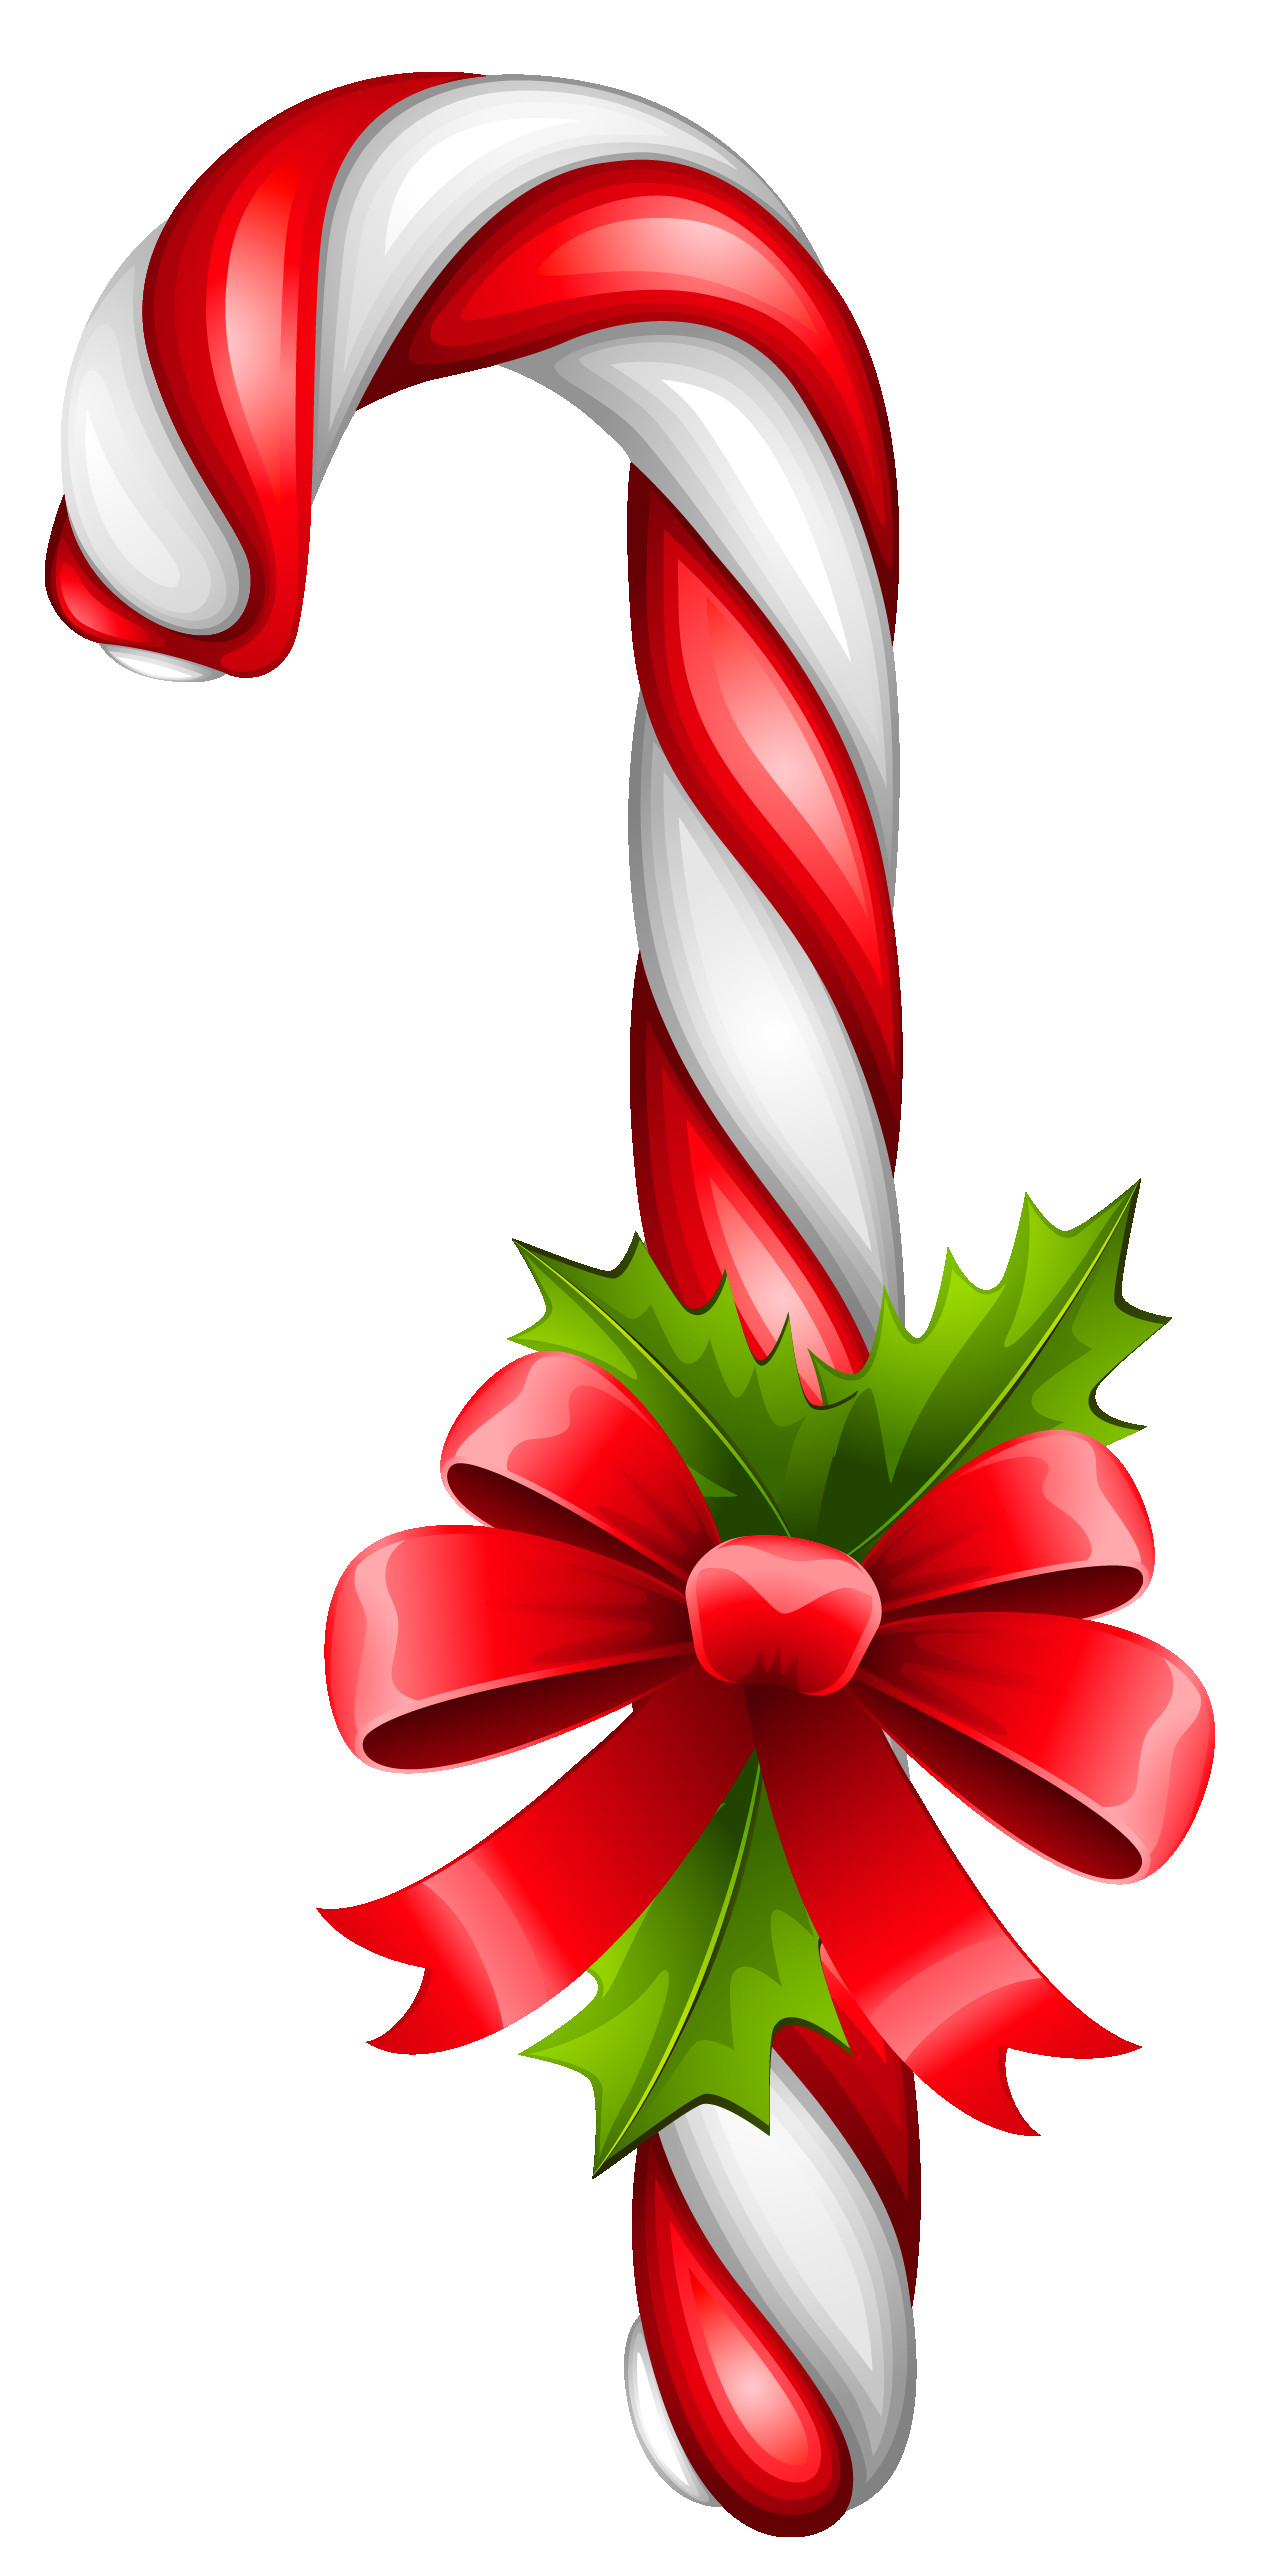 Christmas Candy Cane Images  Candy cane christmas clip art free clip art images free